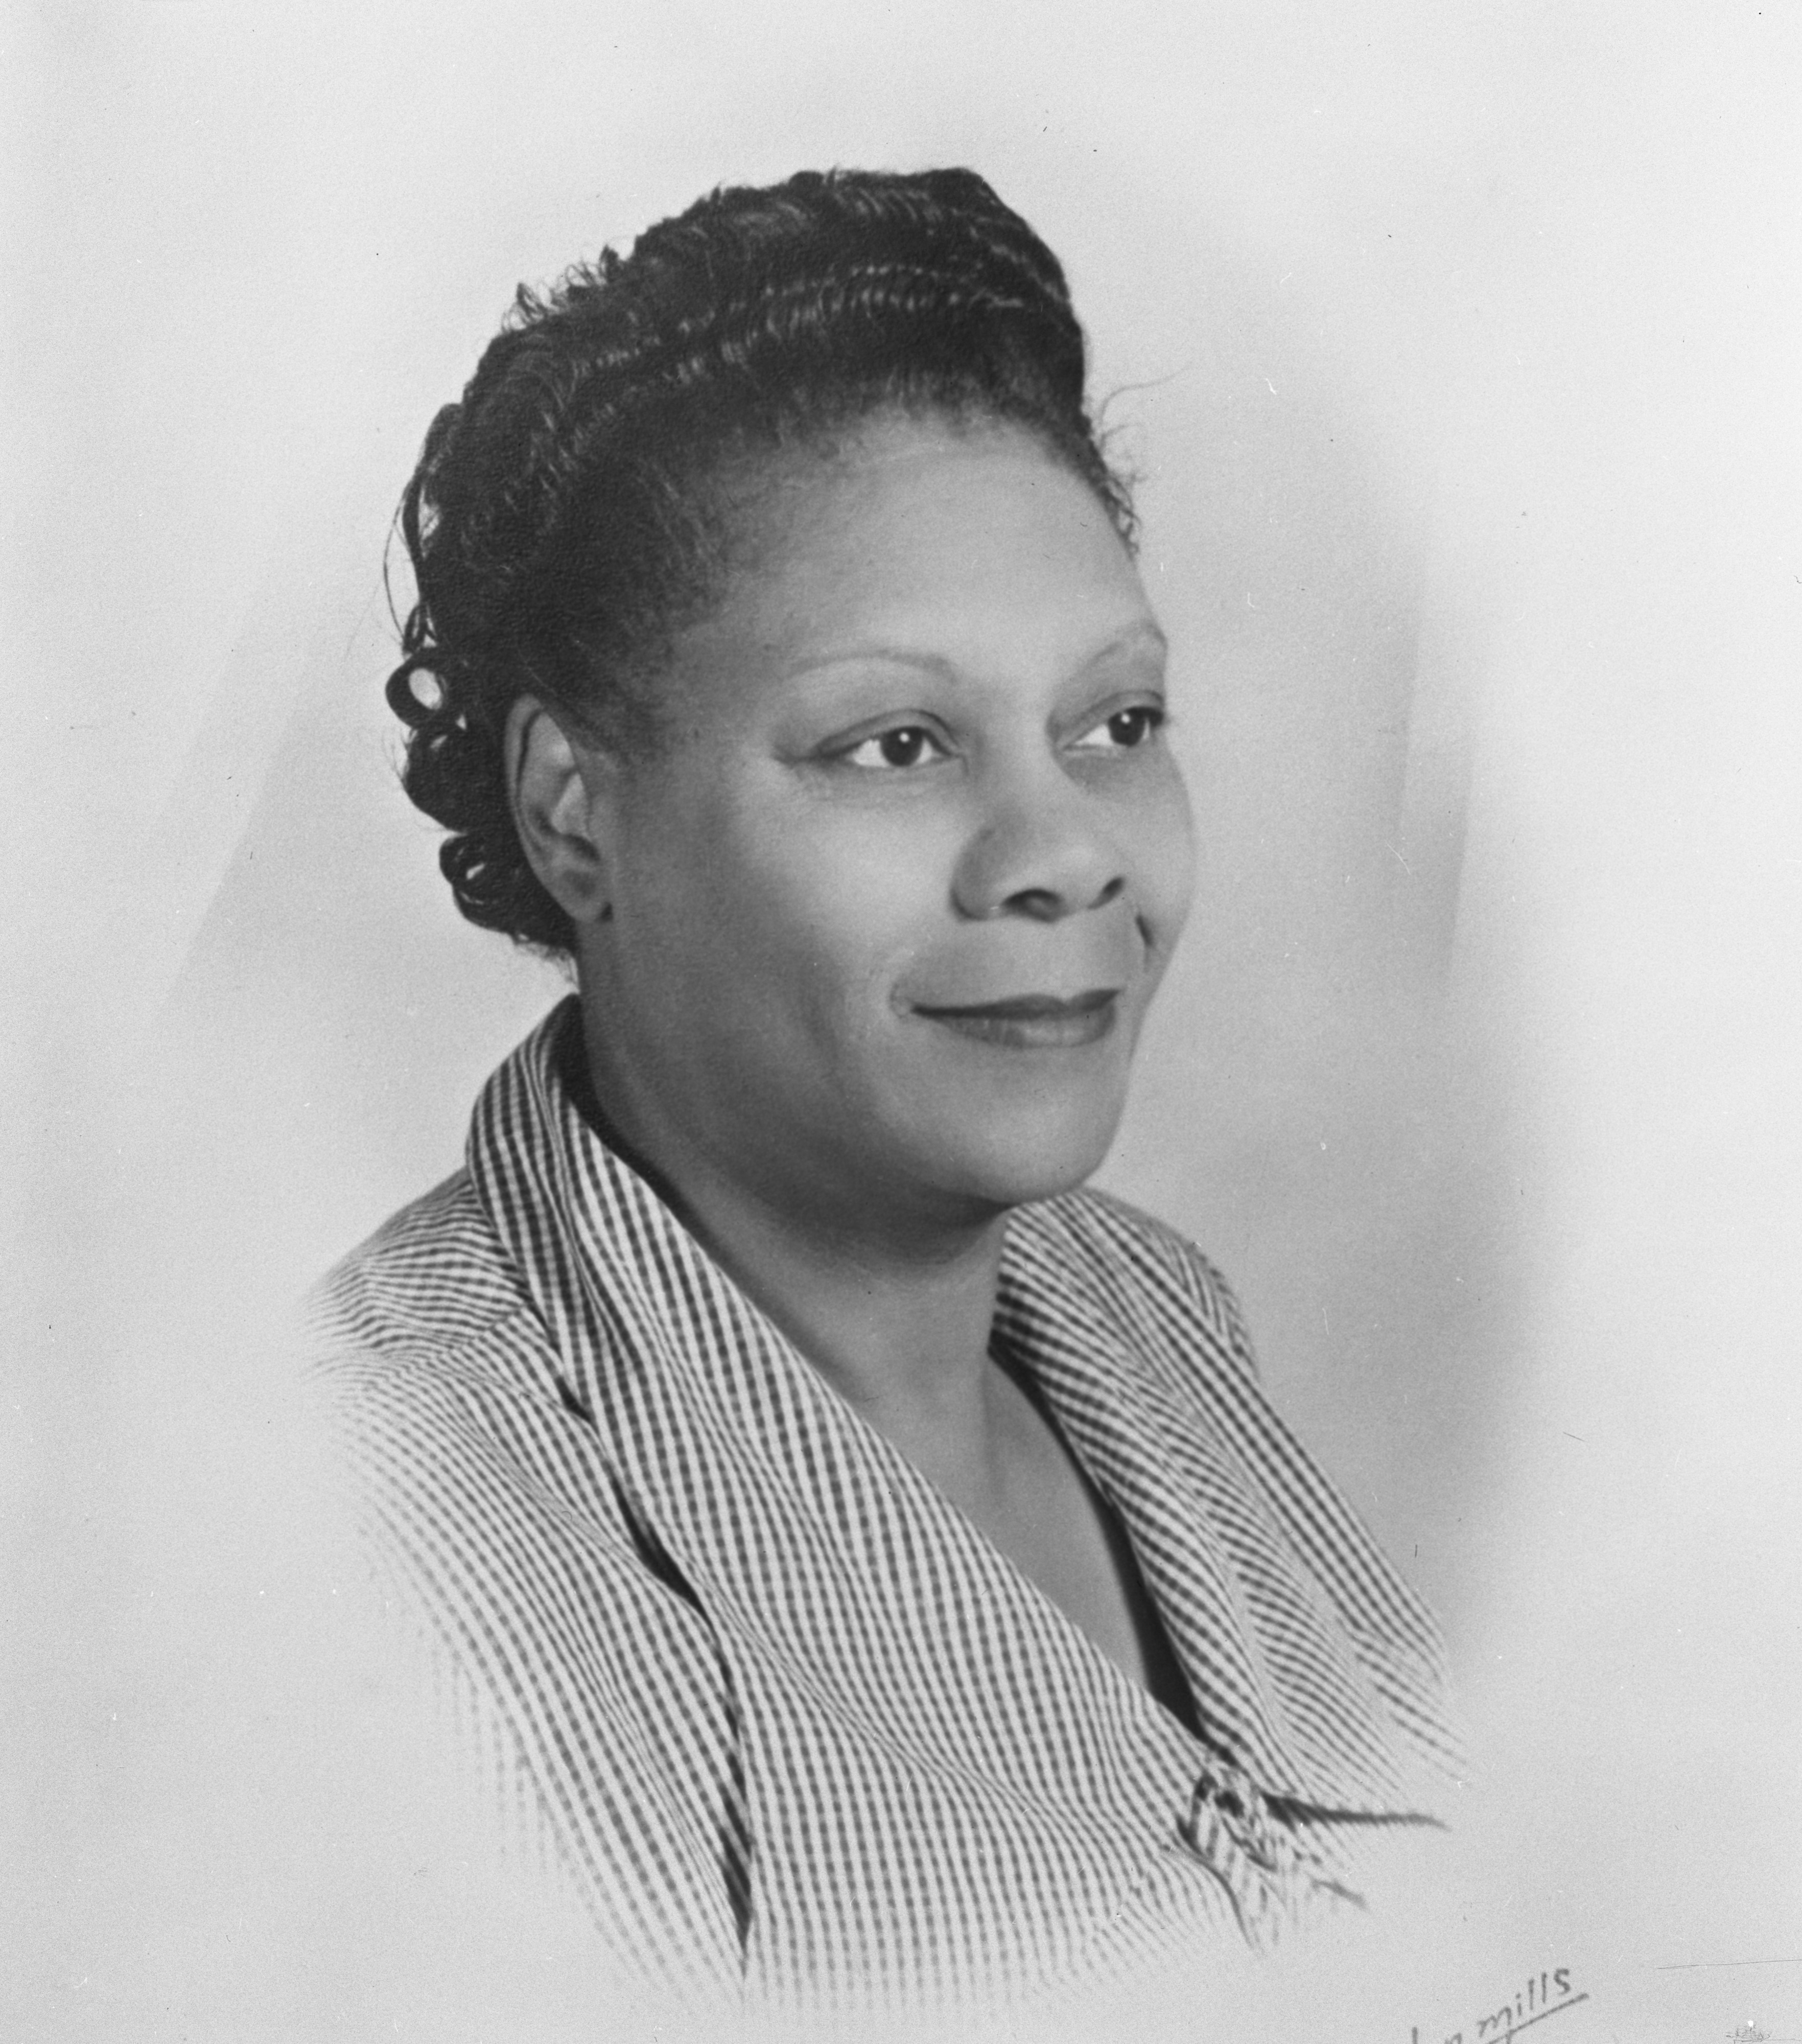 Linnia Knox Carpenter, Civic Leader and Community Volunteer, April 1953 image